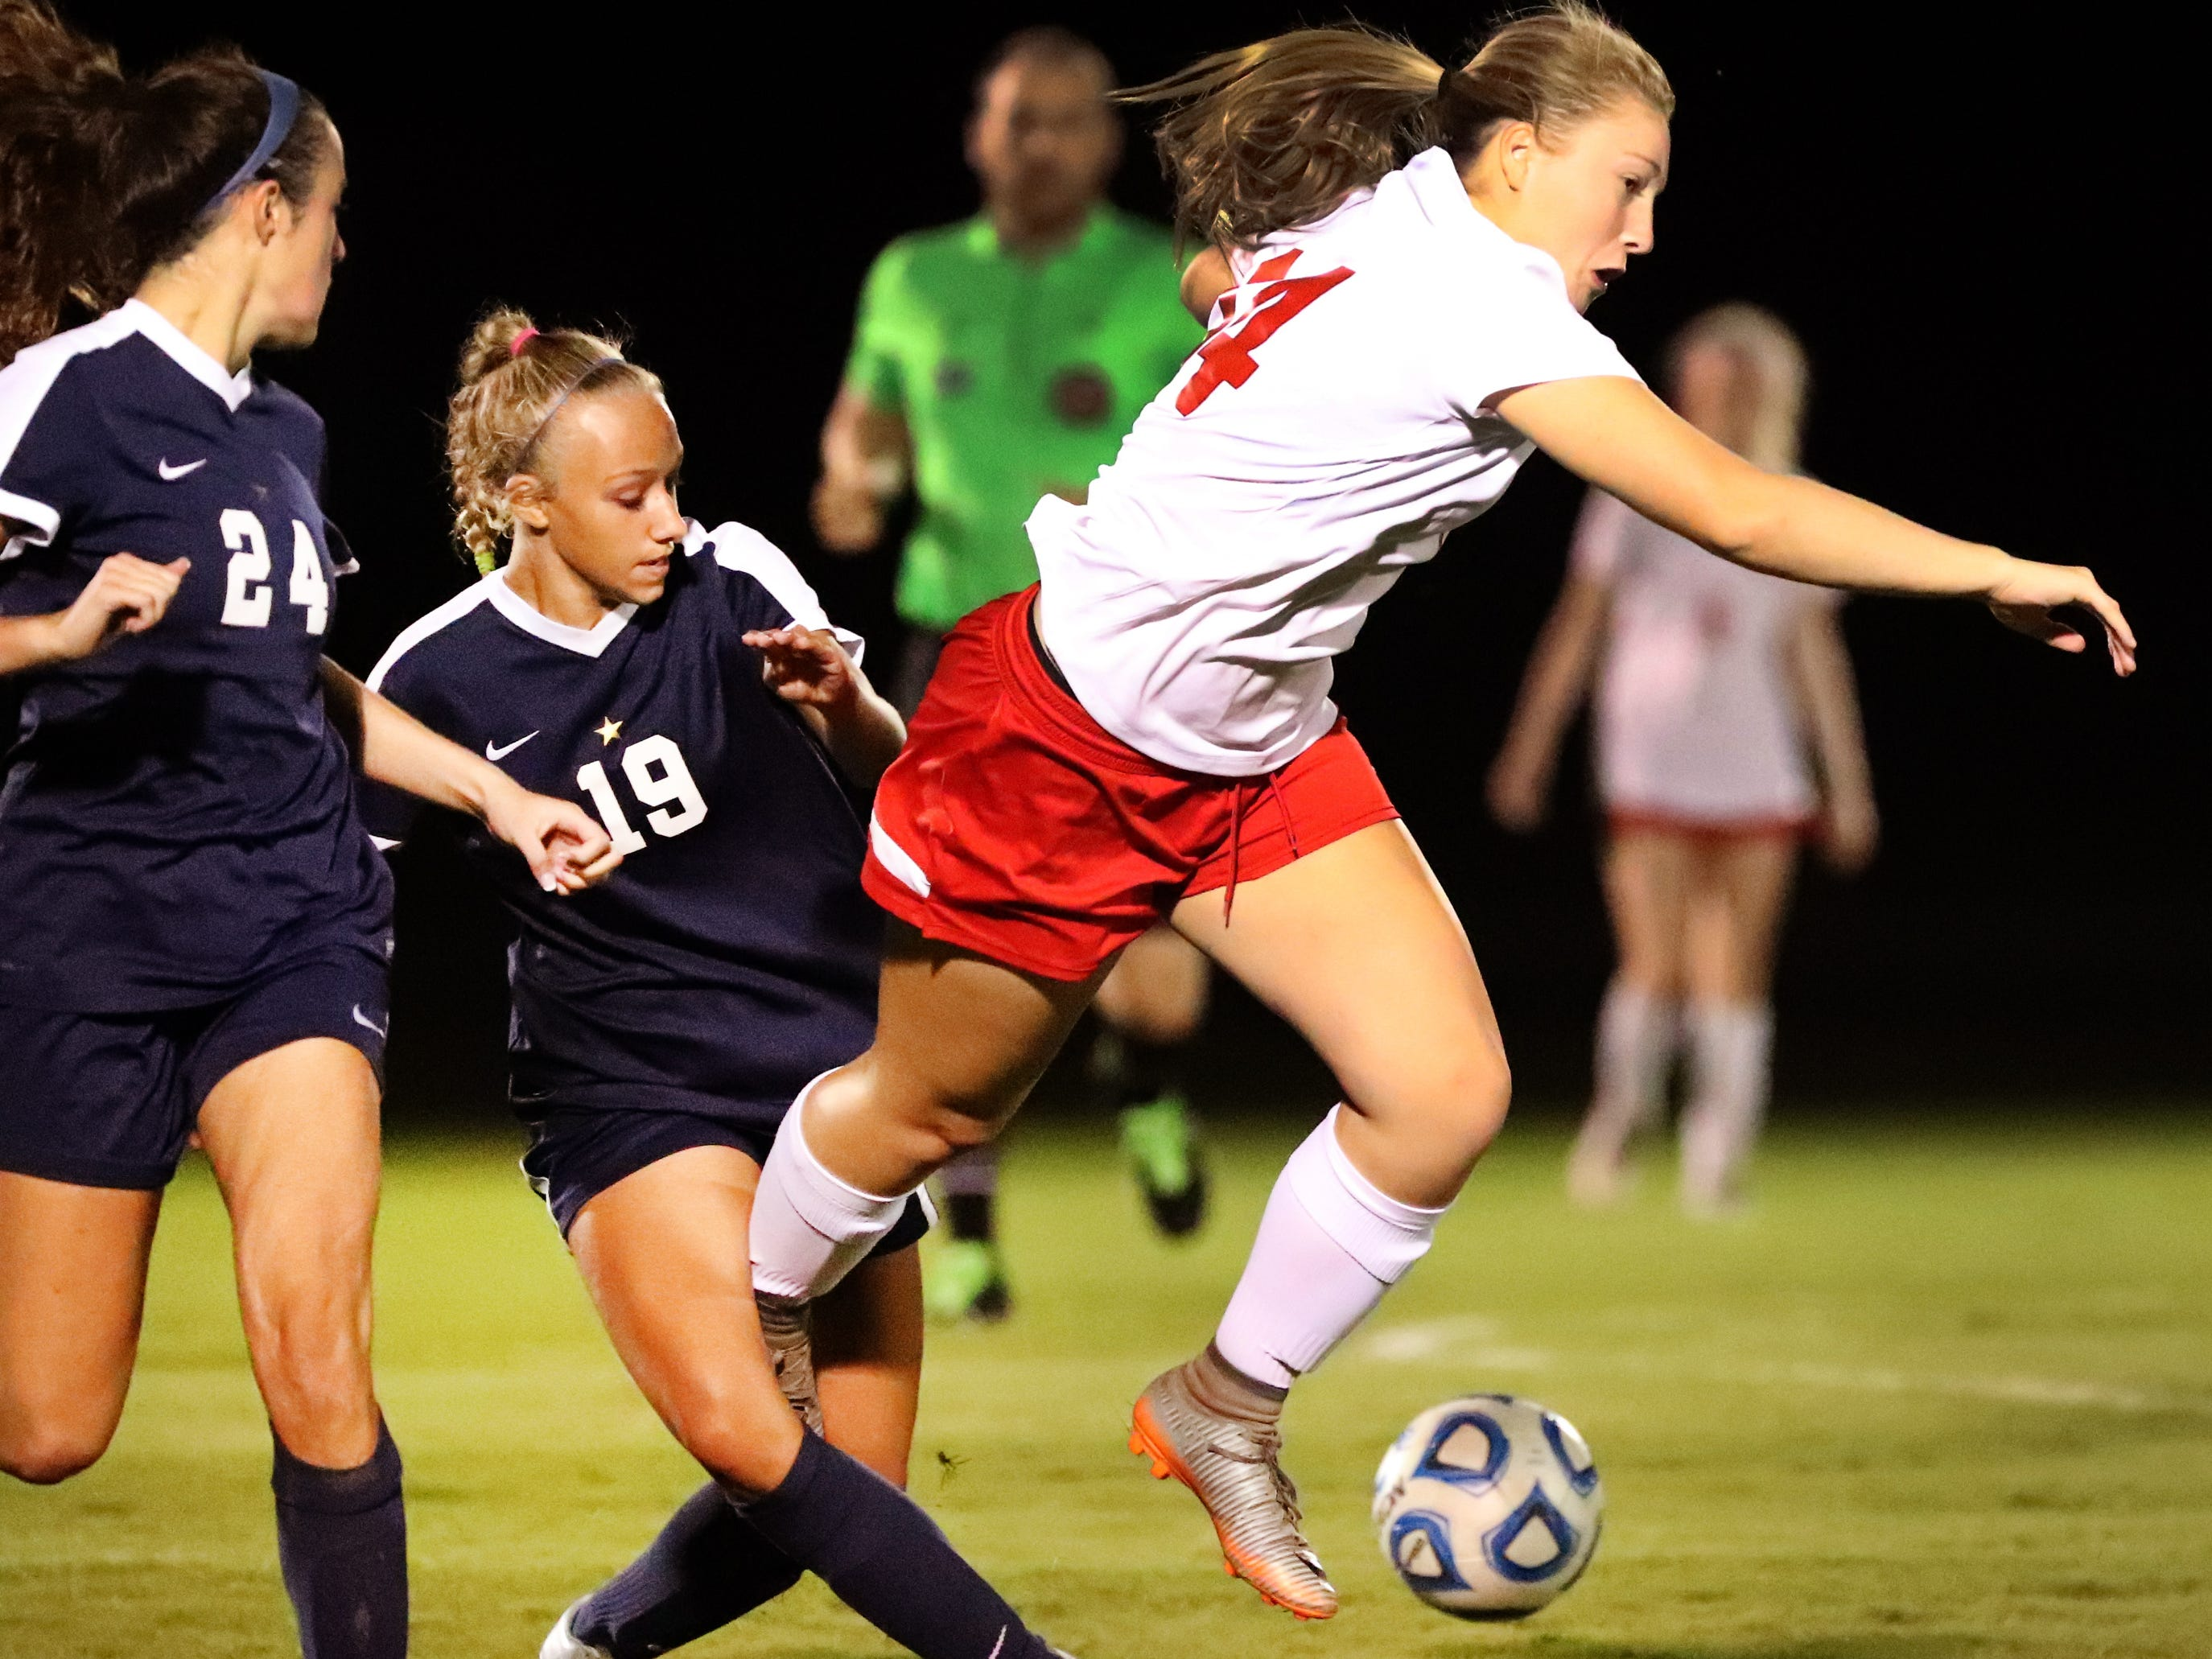 Oakland's Mary Grace Wright (14) trips as she and Siegel's Kayla Hawkins (19) go after the same ball during the semifinals in the 7-AAA Soccer Tournament, on Tuesday,  Oct. 09, 2018 at the Siegel Soccer Complex.